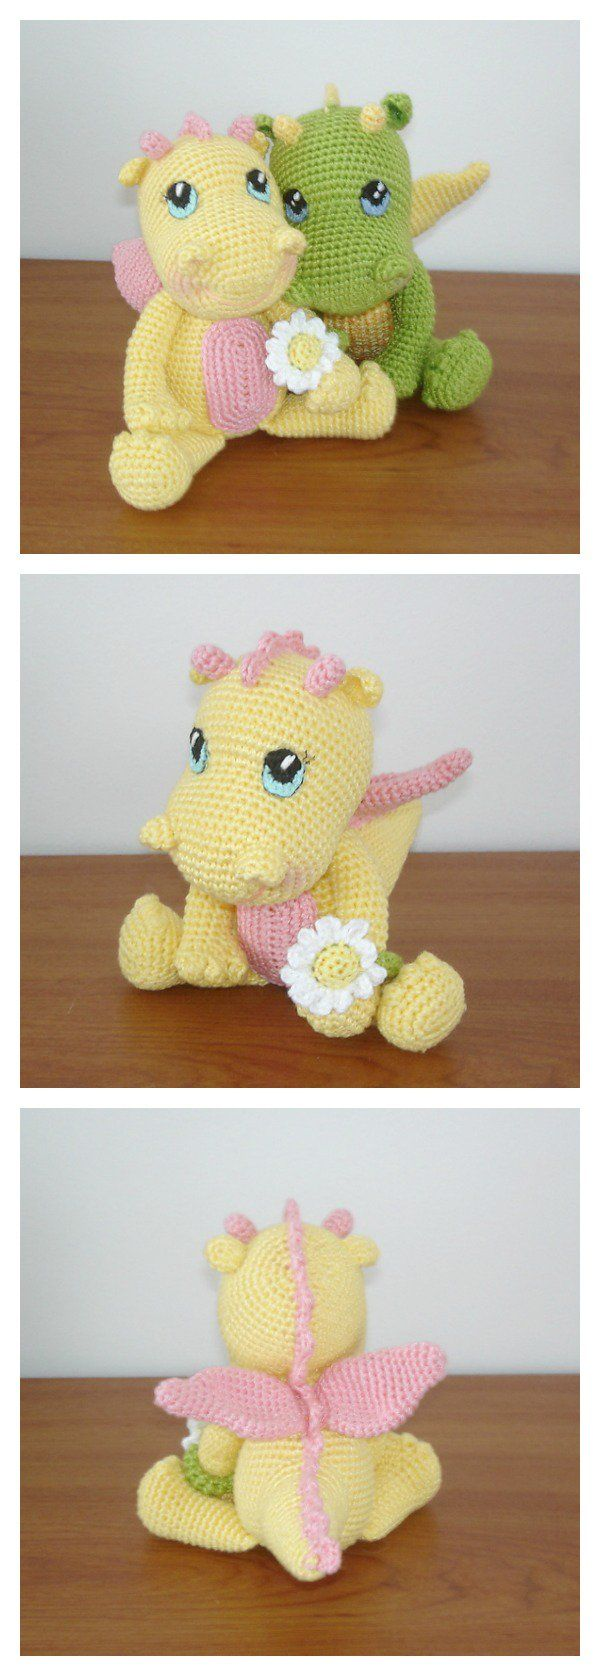 1190 best Tiere und Puppen images on Pinterest | Crochet animals ...